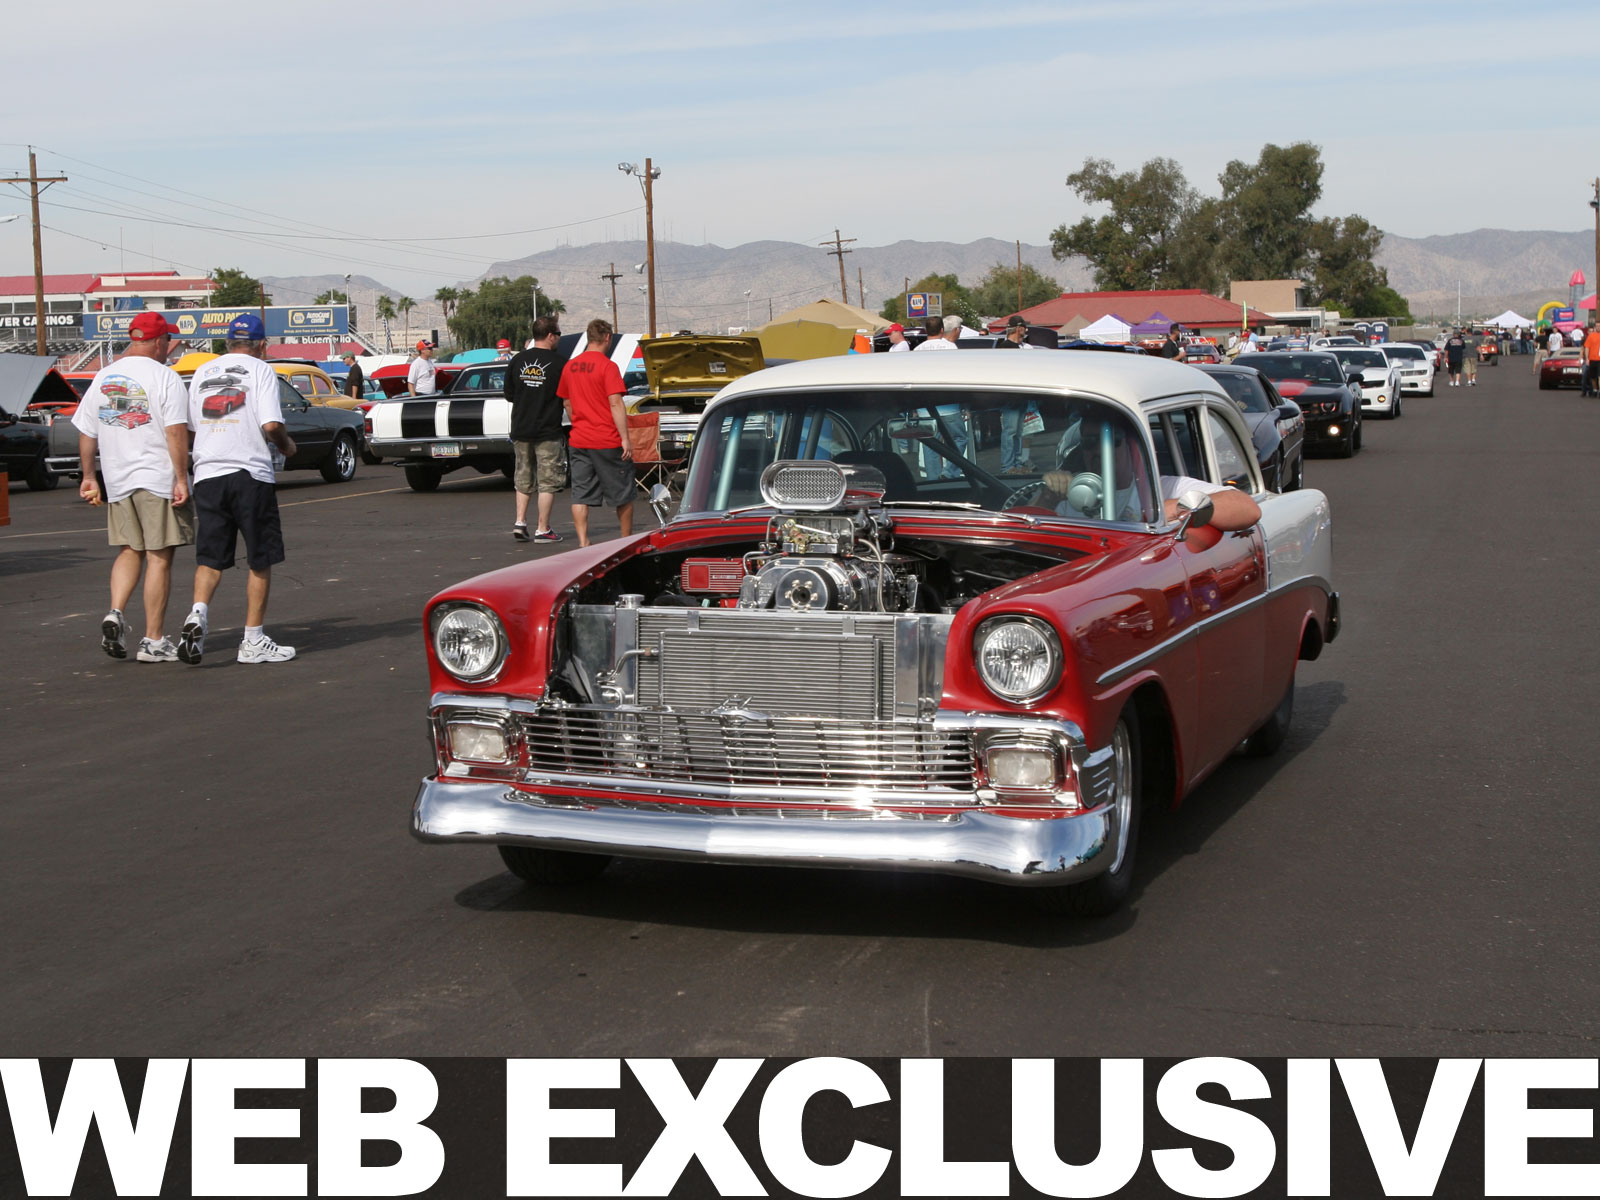 Super Chevy Show at Firebird Raceway - Show & Shine